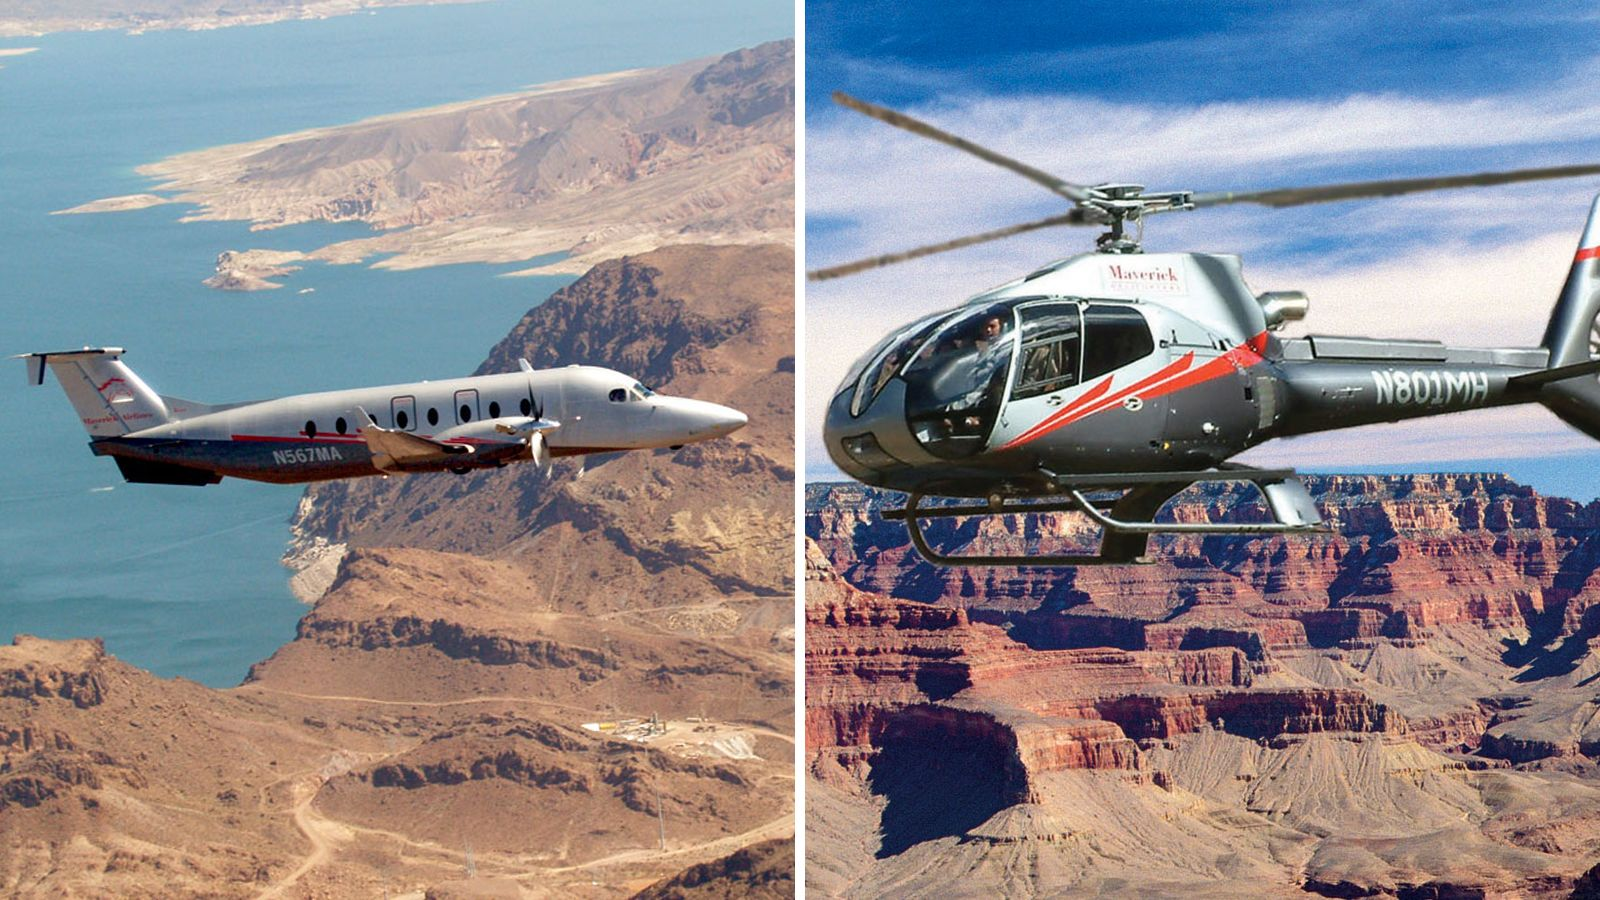 Grand Canyon South Plane & Helicopter Tour